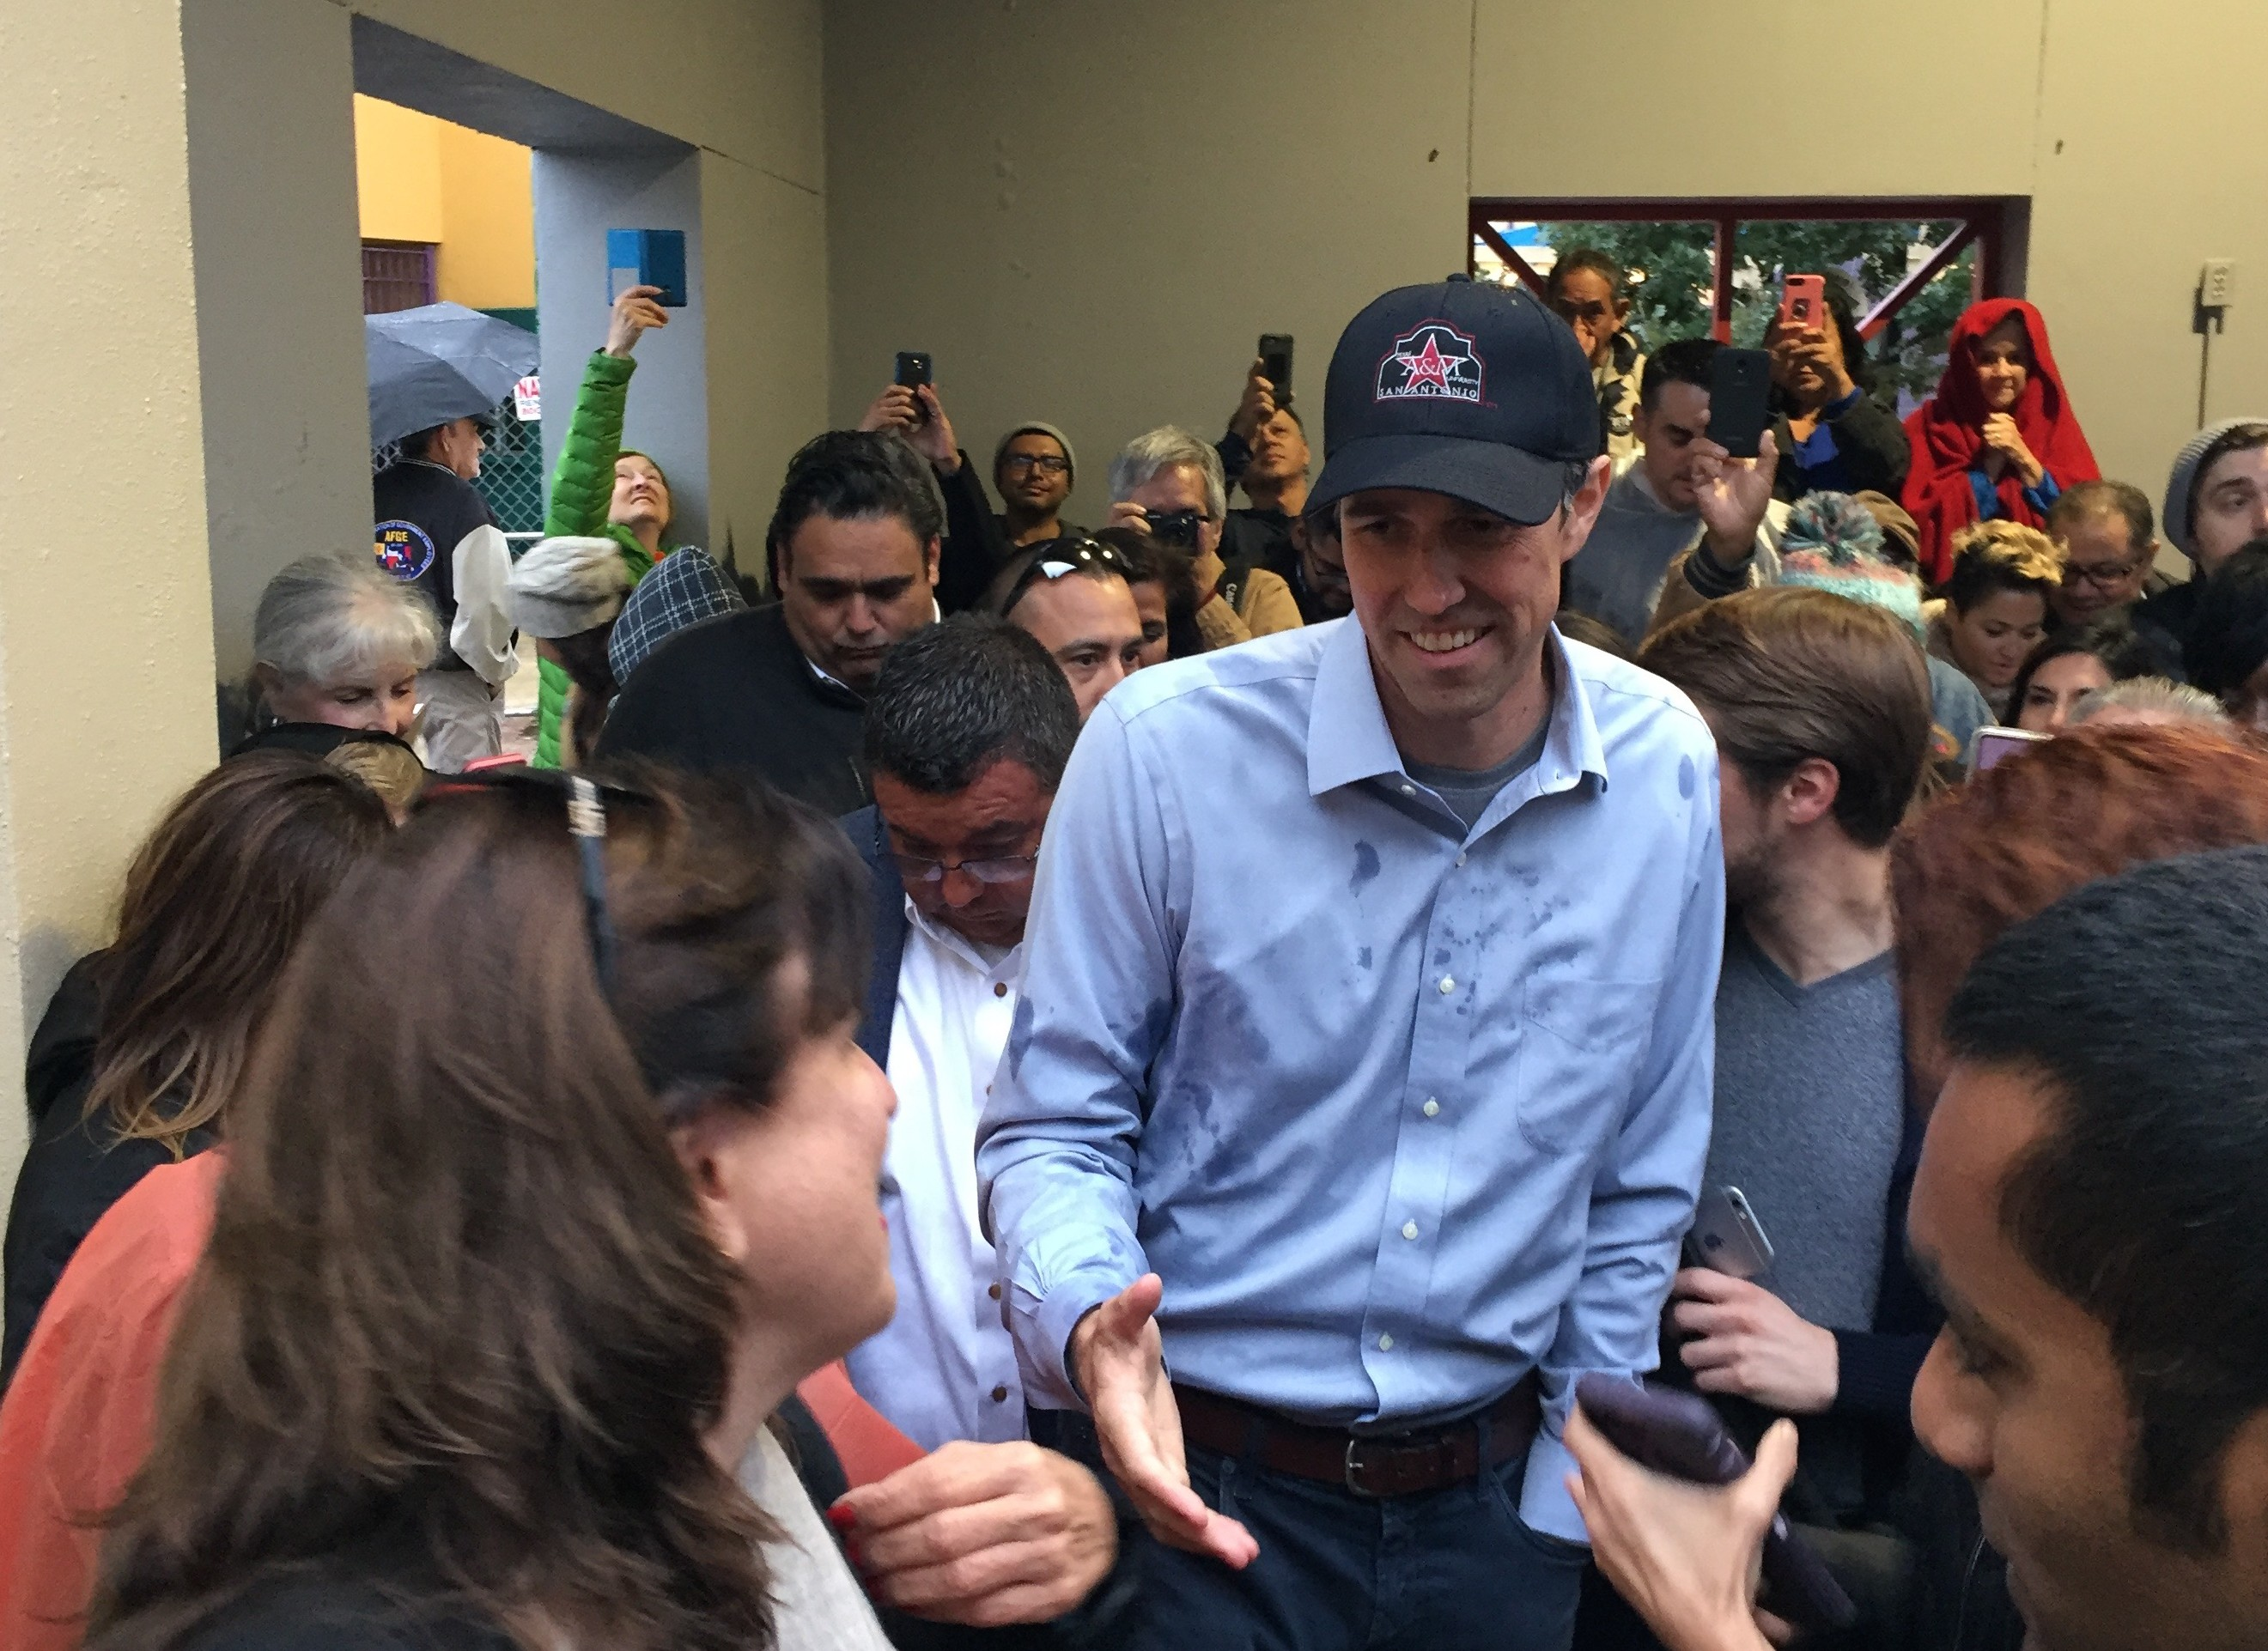 GOP meddles in Democratic nomination with takedown of O'Rourke